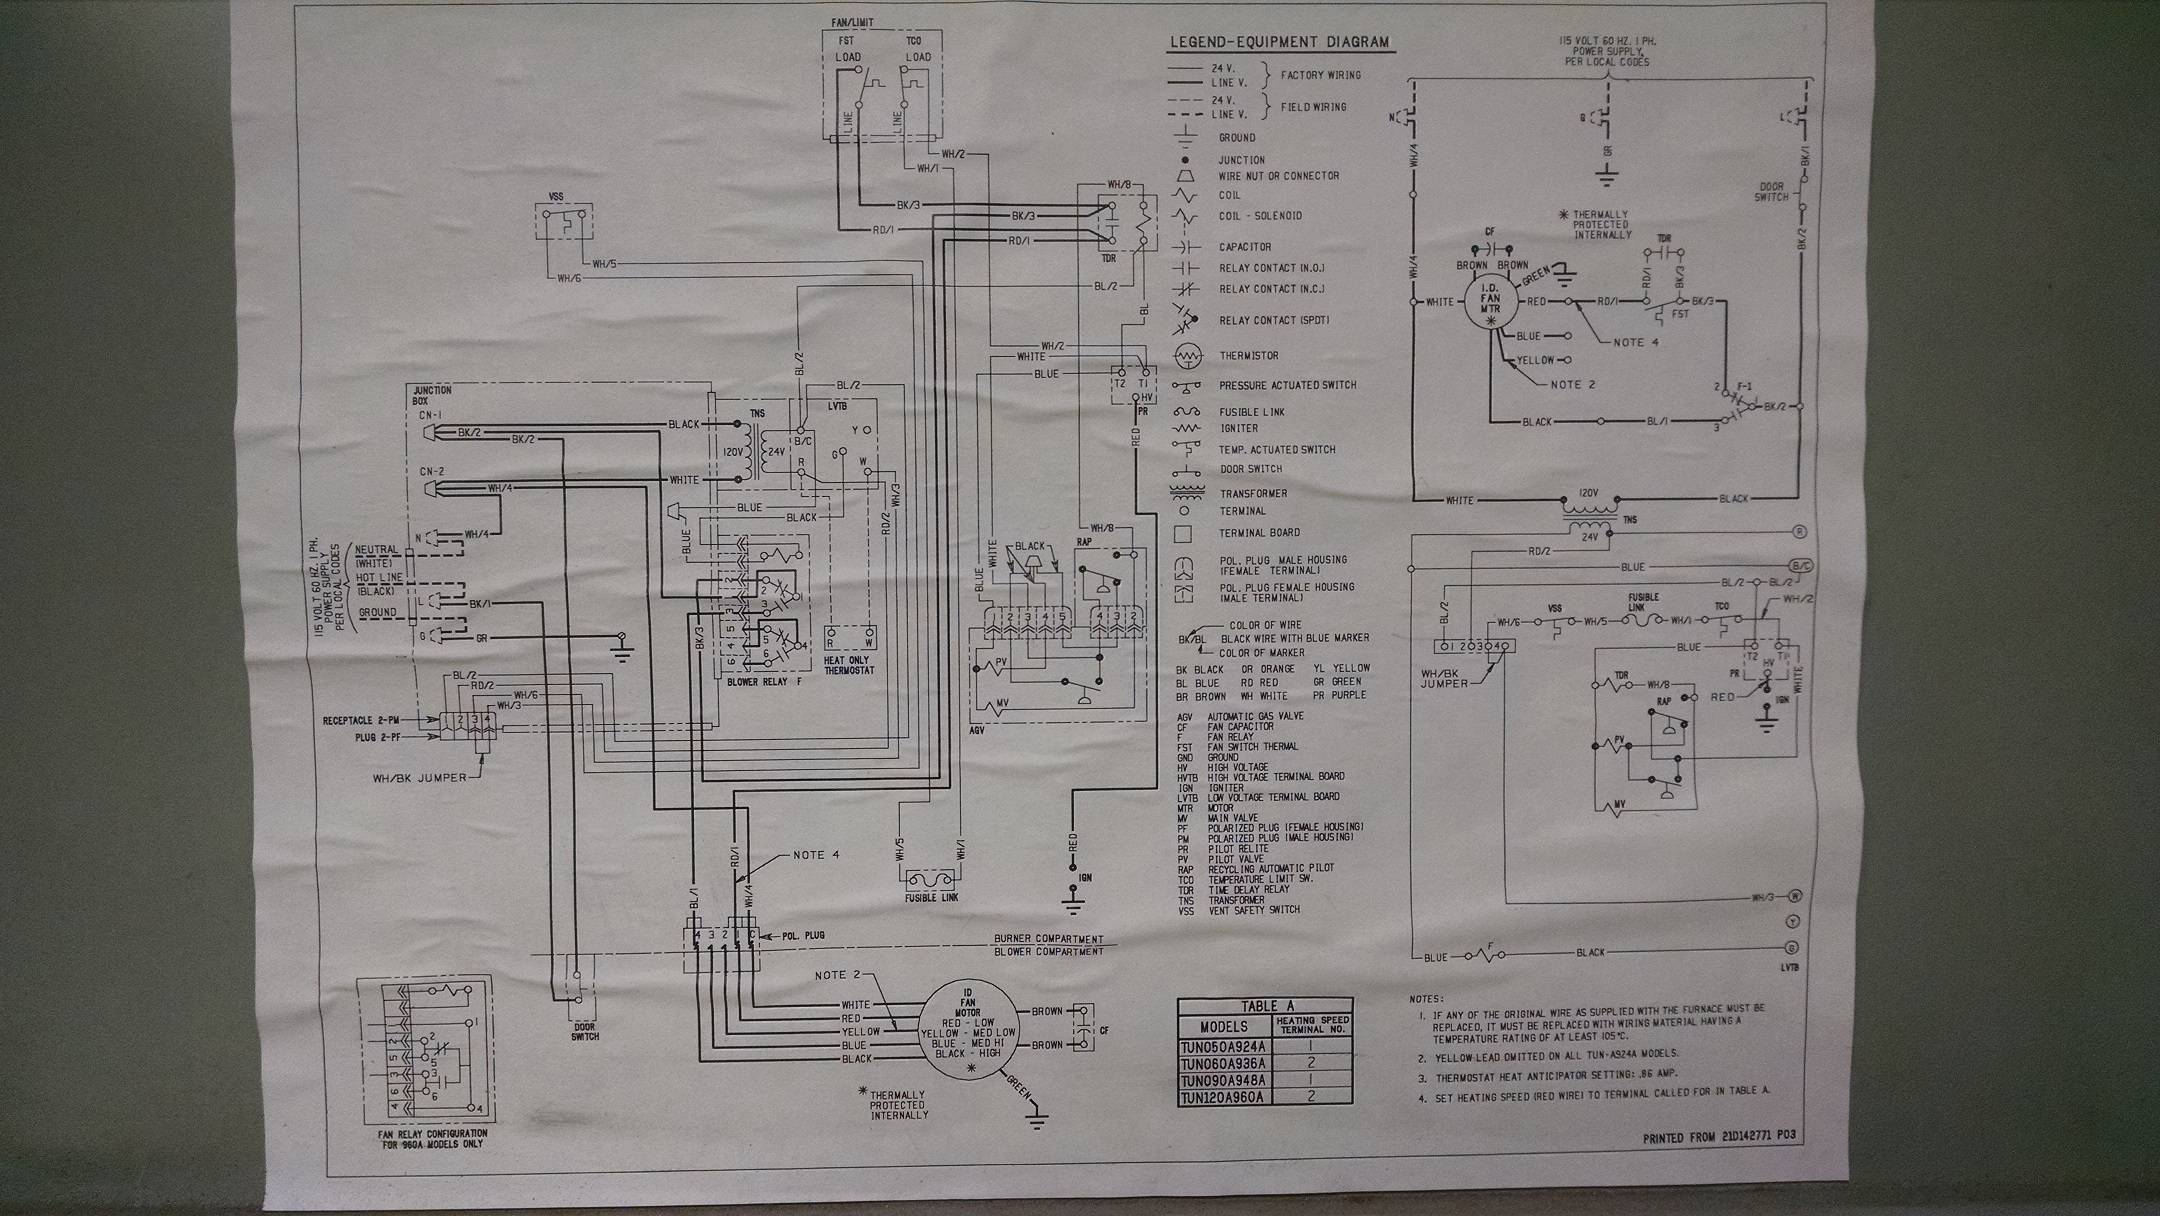 19821987 Wiring Harness Electrical And Ignition Diagram And Parts